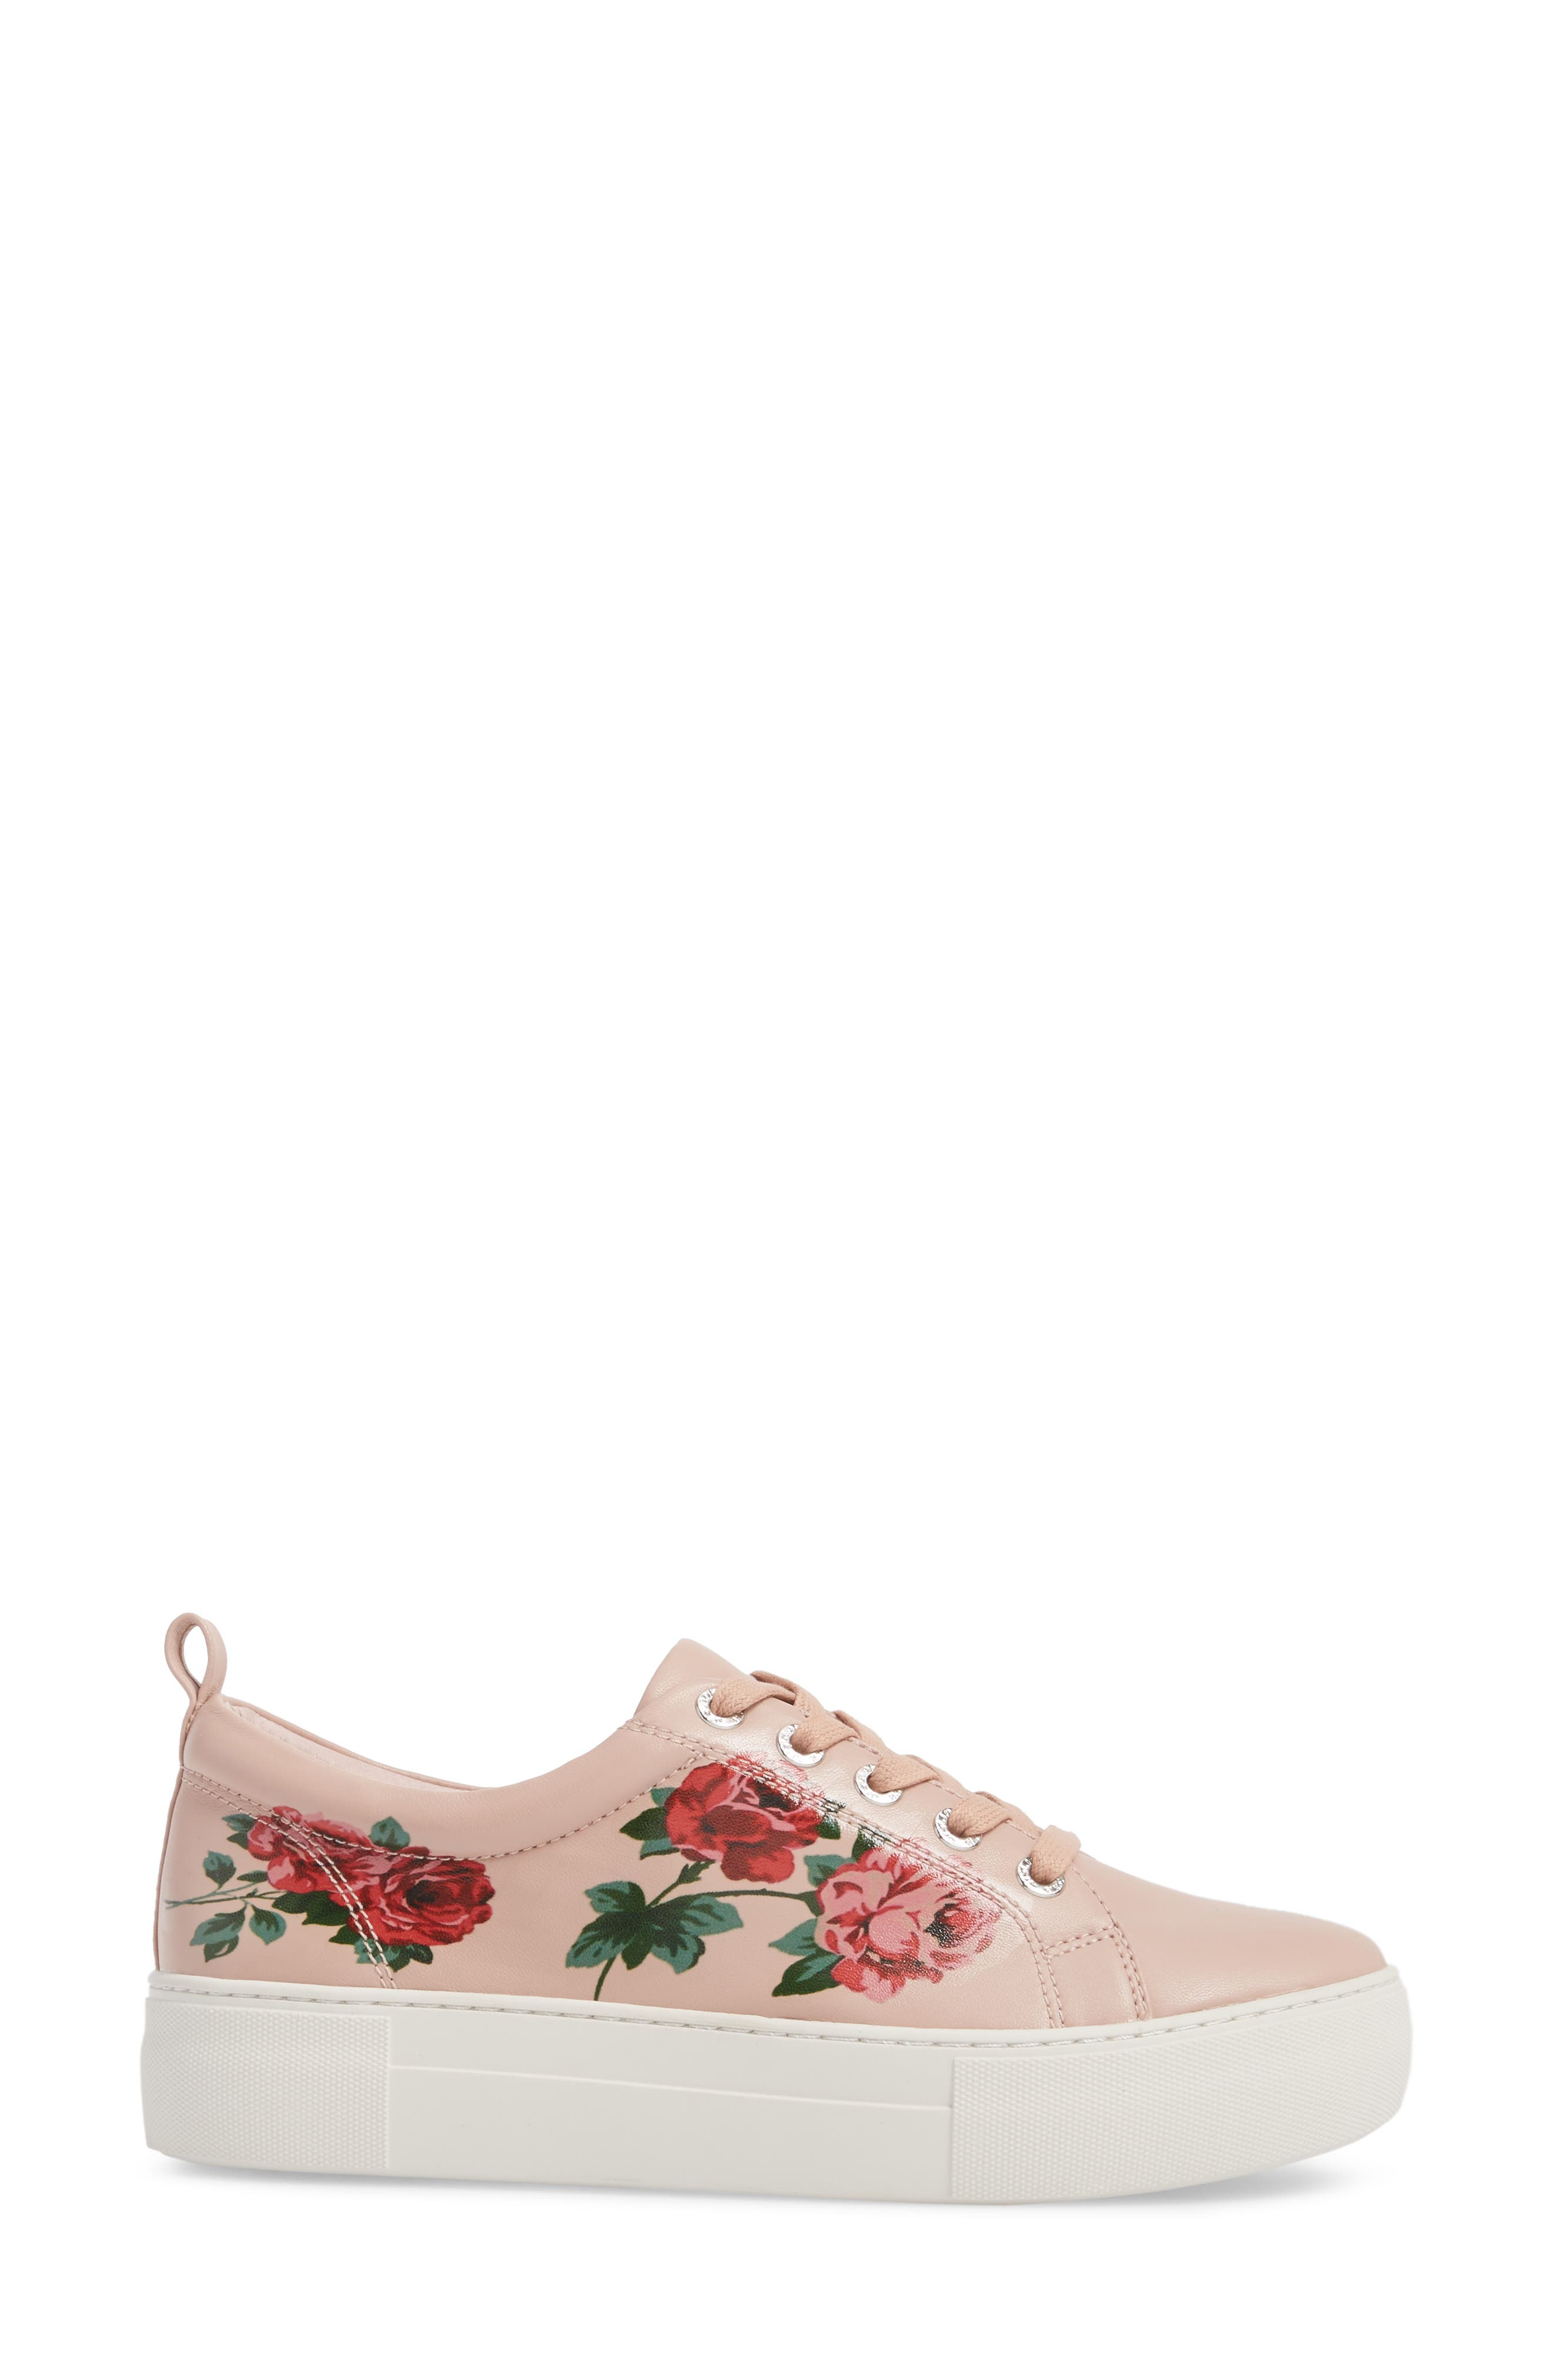 Adel Floral Sneaker,                             Alternate thumbnail 3, color,                             Pink Leather